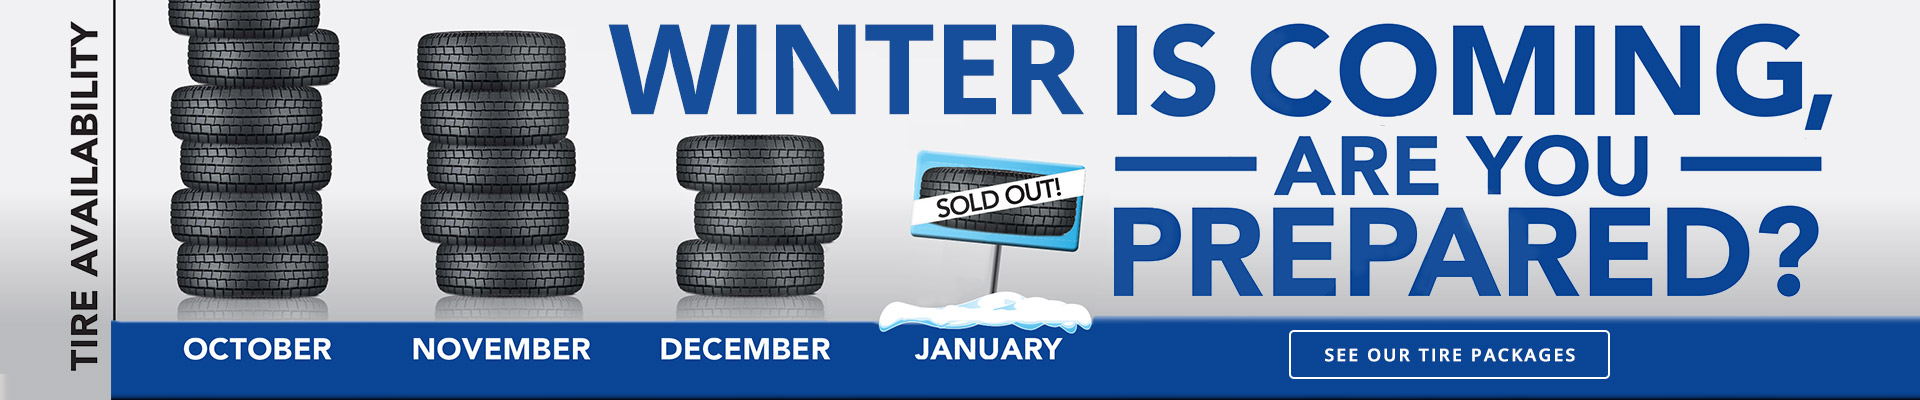 Snowy Winter Tire Stacks at Willowdale Subaru's Parts Department